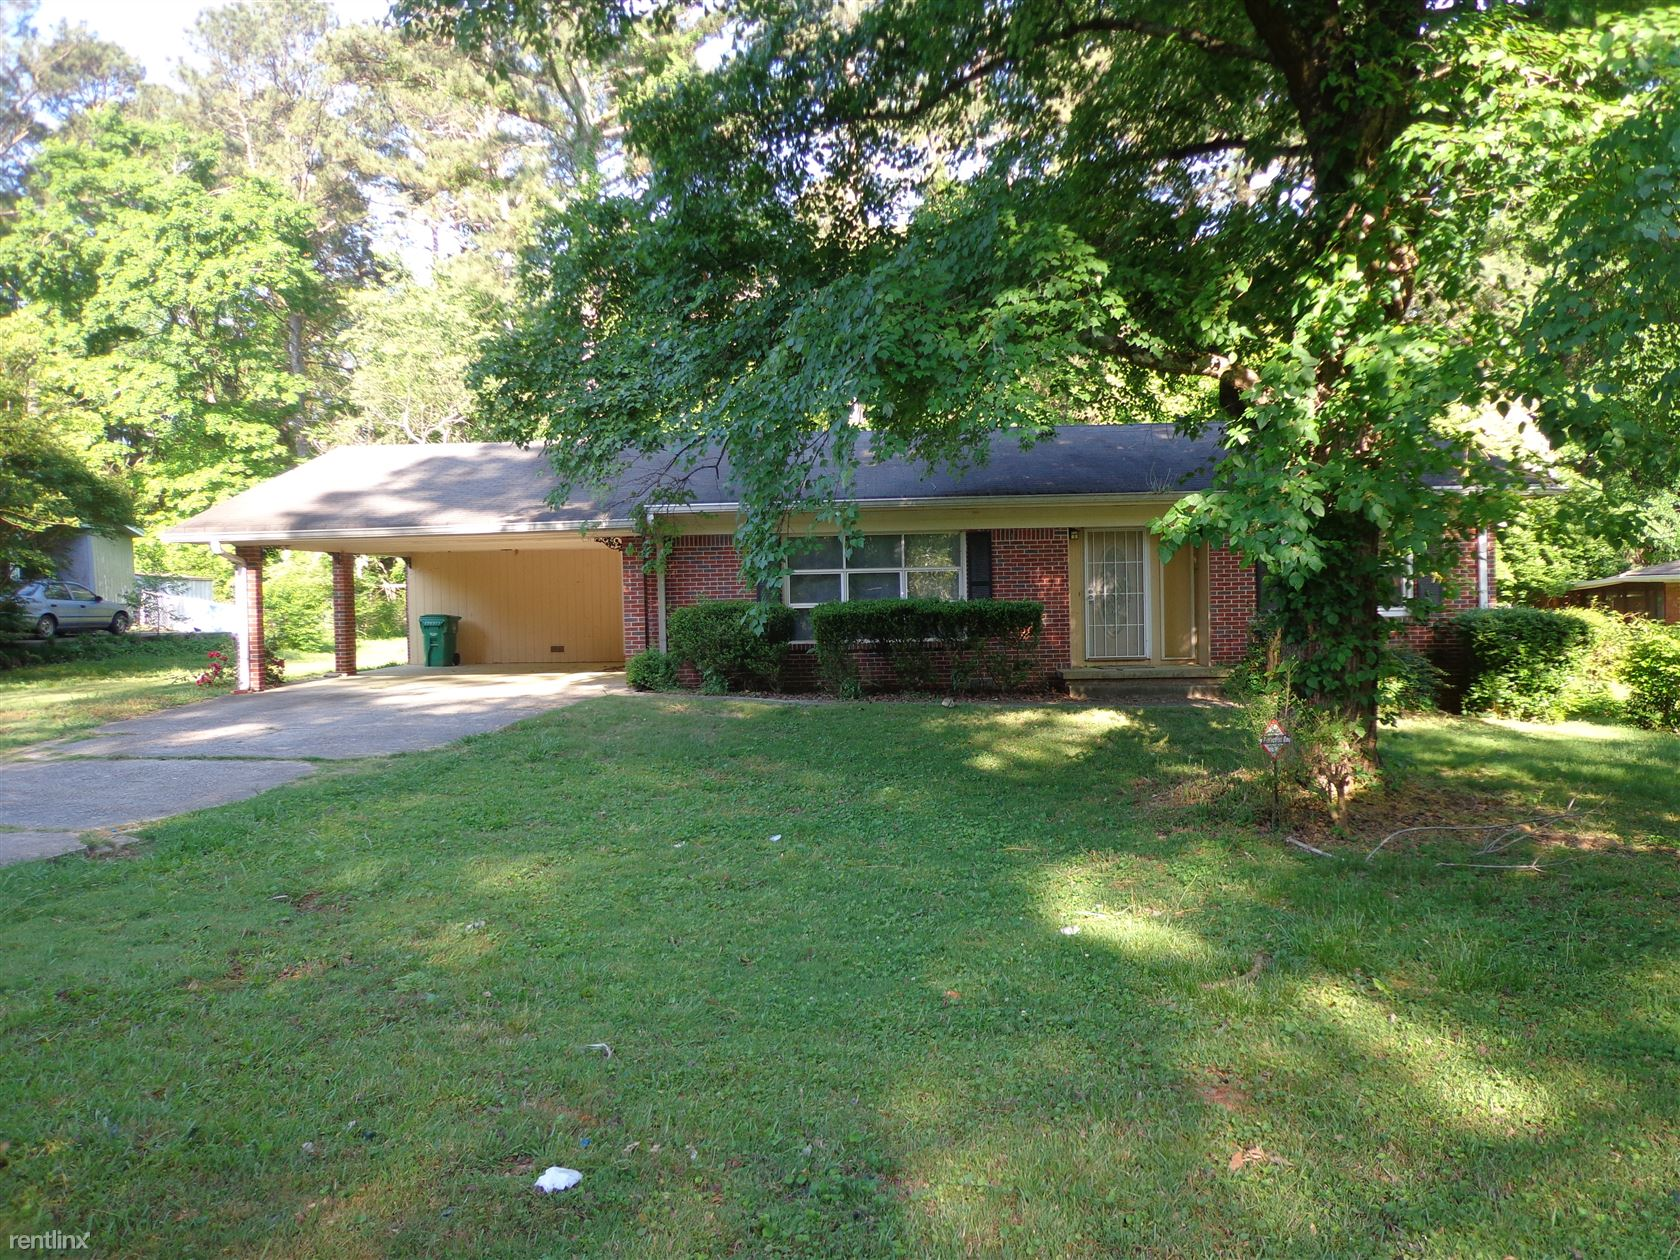 House for Rent in Conley